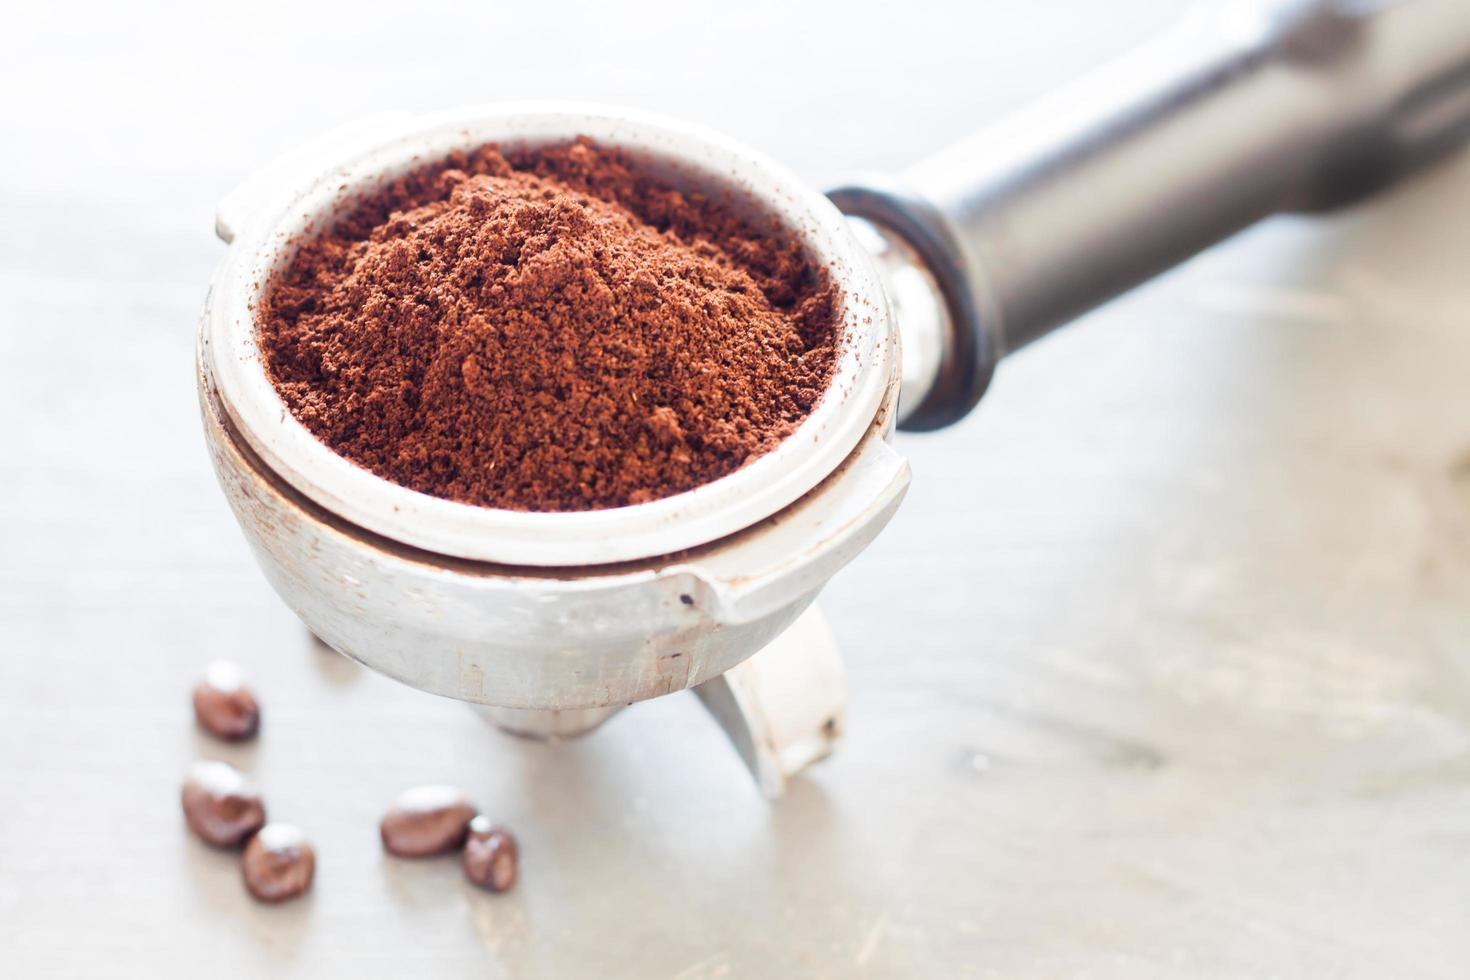 Coffee grinder with coffee in it photo